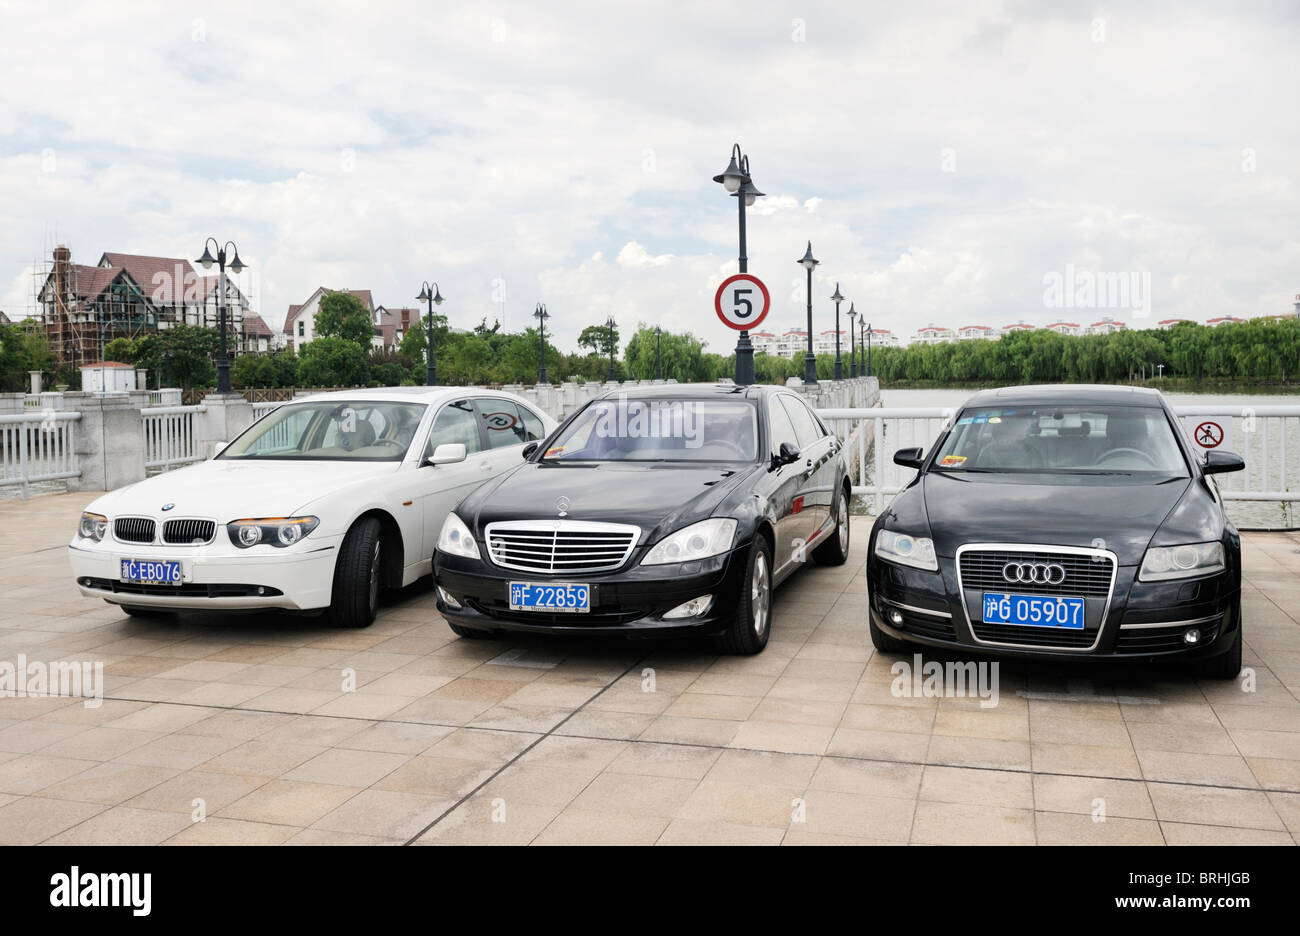 Songjiang, Shanghai, China. Luxury German import cars seen in Thames Town, one of the new town developments in Songjiang - Stock Image